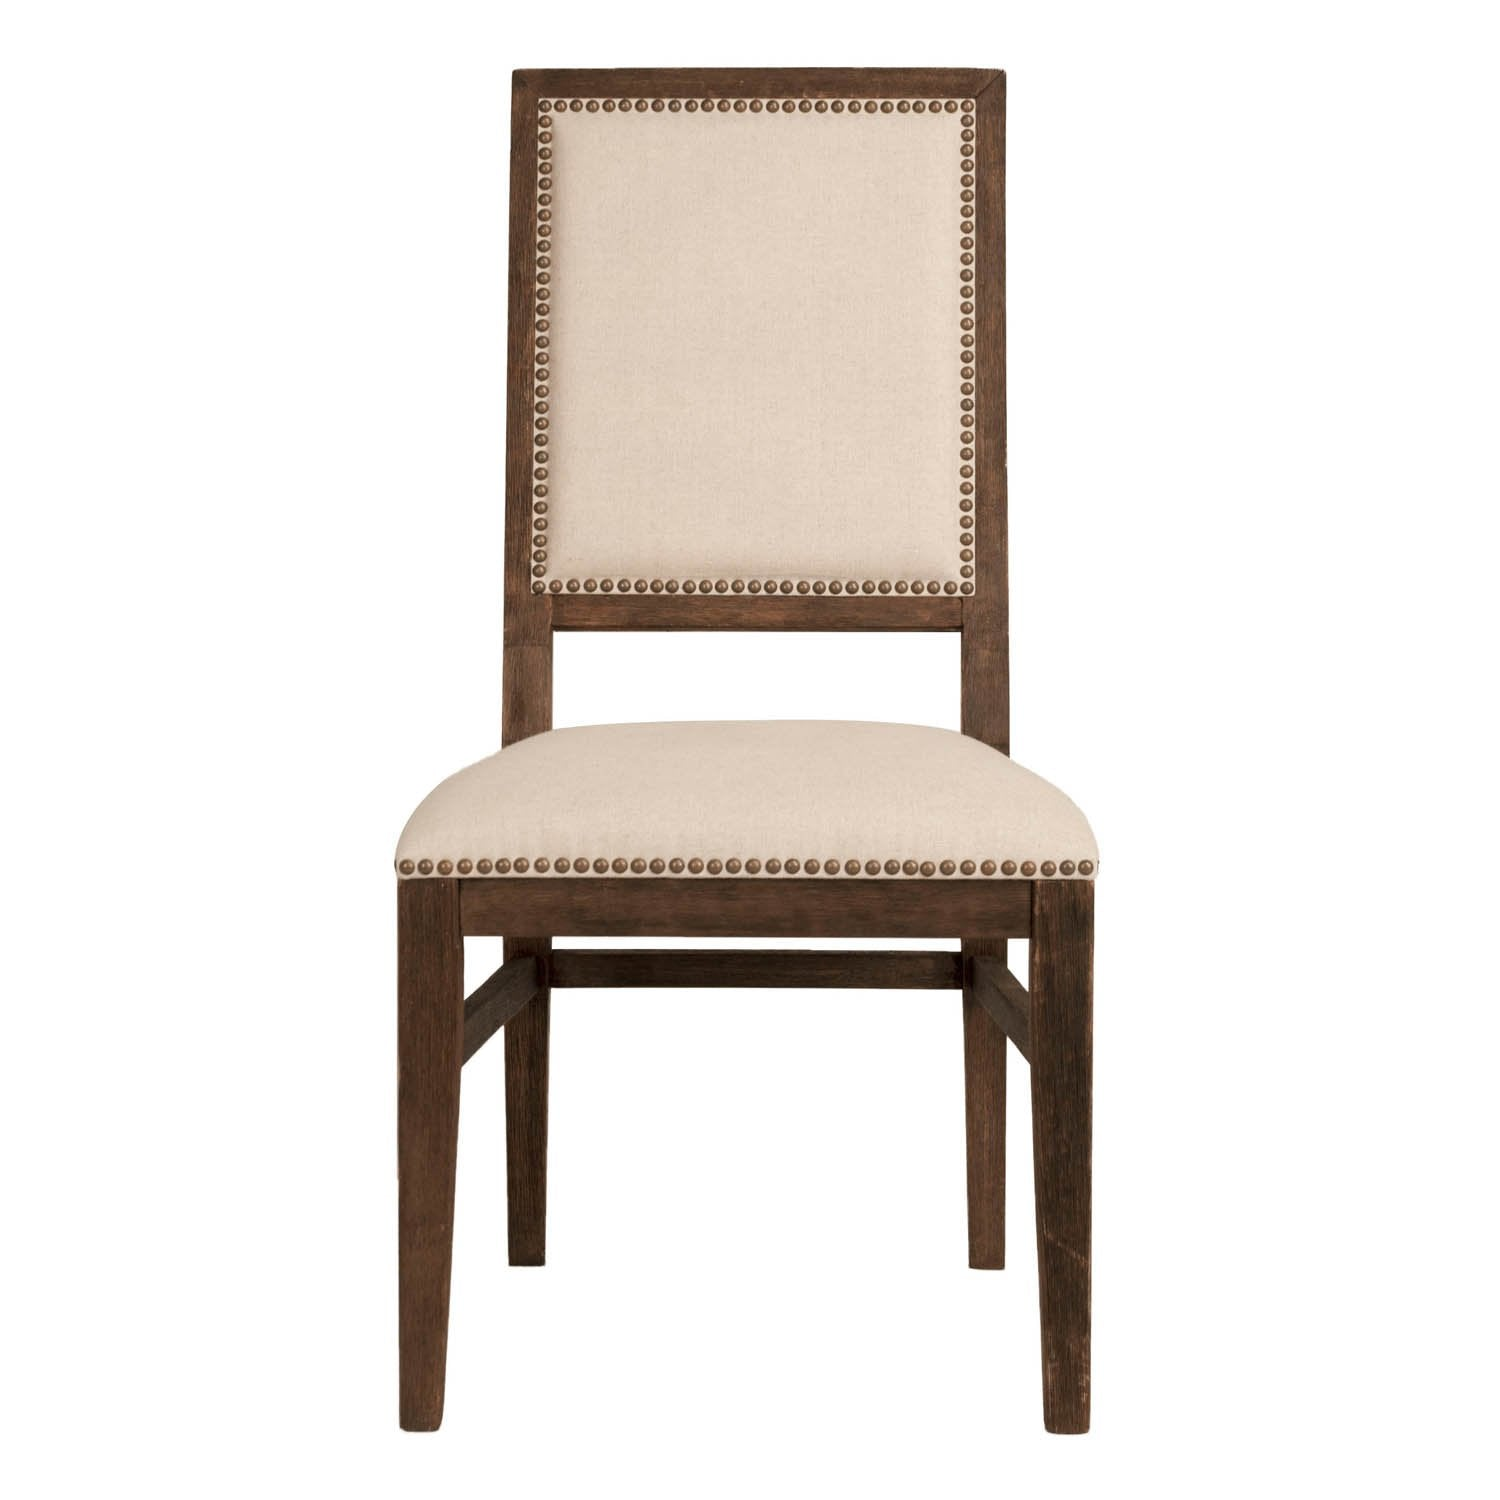 Dexter Dining Chair (Set of 2) in Natural Fabric,  Rustic Java